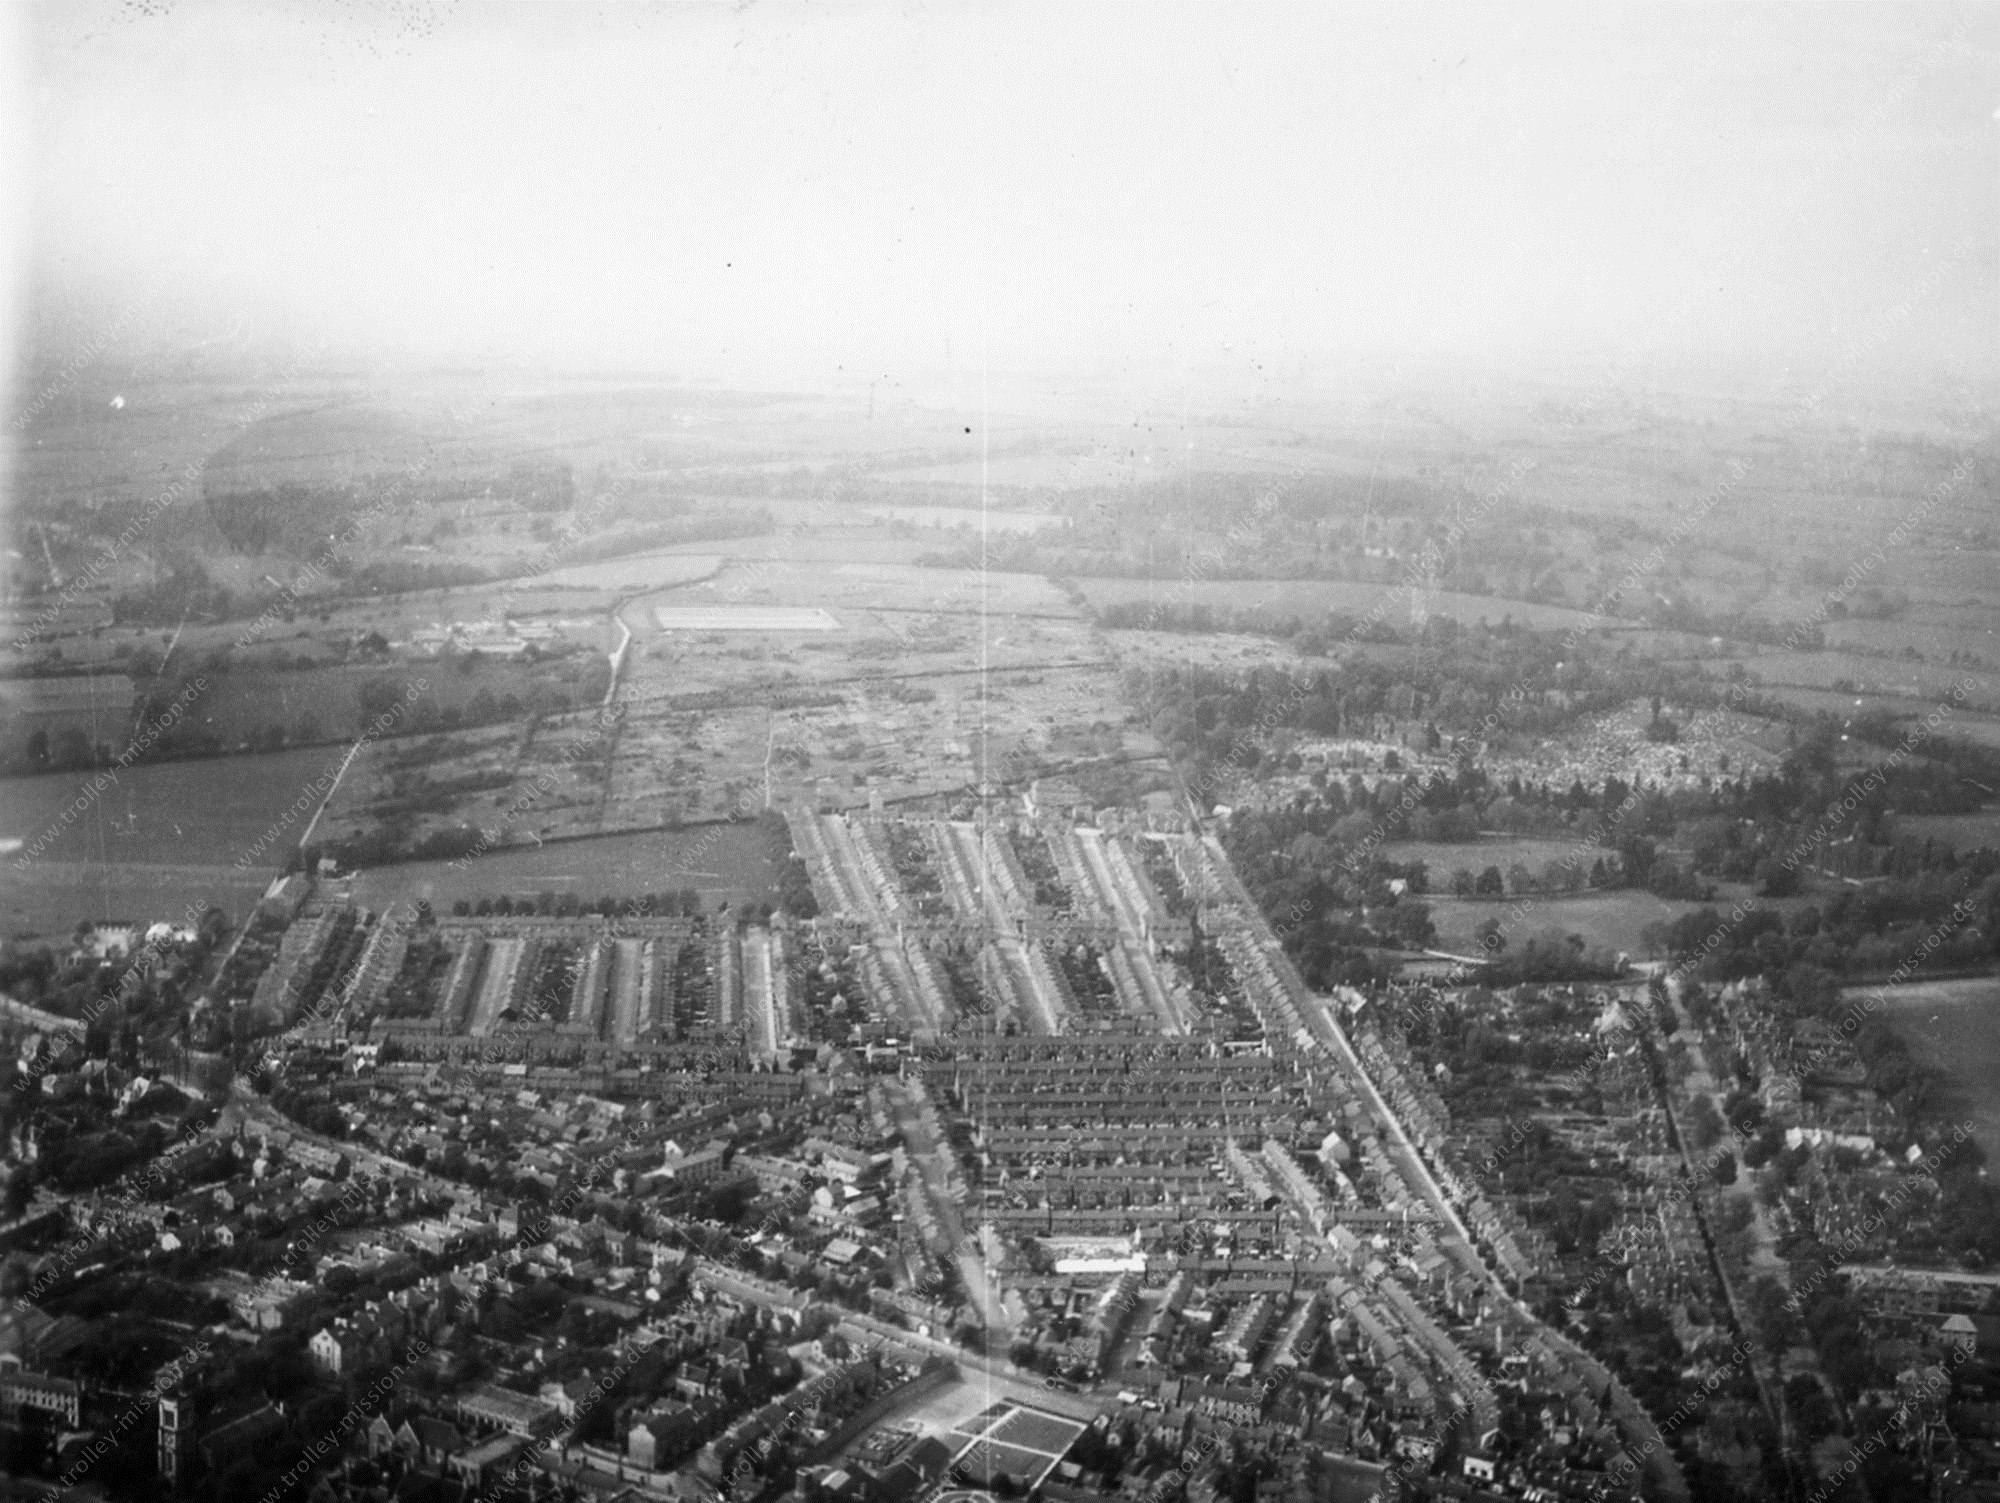 Bedford (England) - Aerial View of the County Town of Bedfordshire in May 1945